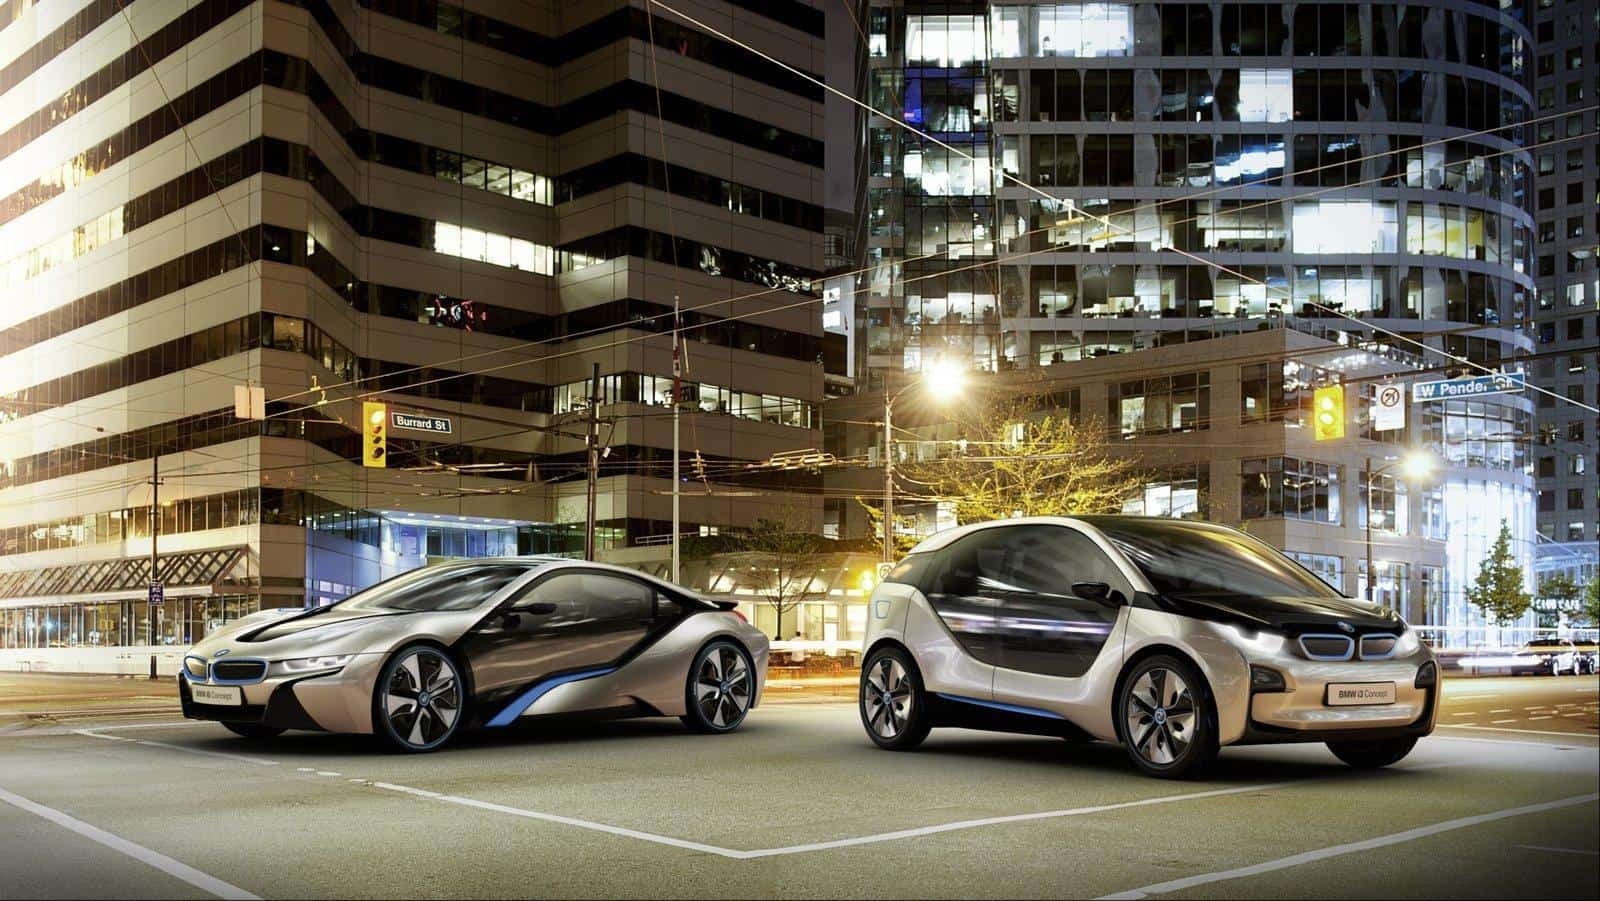 Perfect BMW Has Officially Introduced Last Week The First Two Vehicles From Their  New Green Brand, I BMW, The BMW I8 And I3 Concepts That Will Be Launched On  The ...